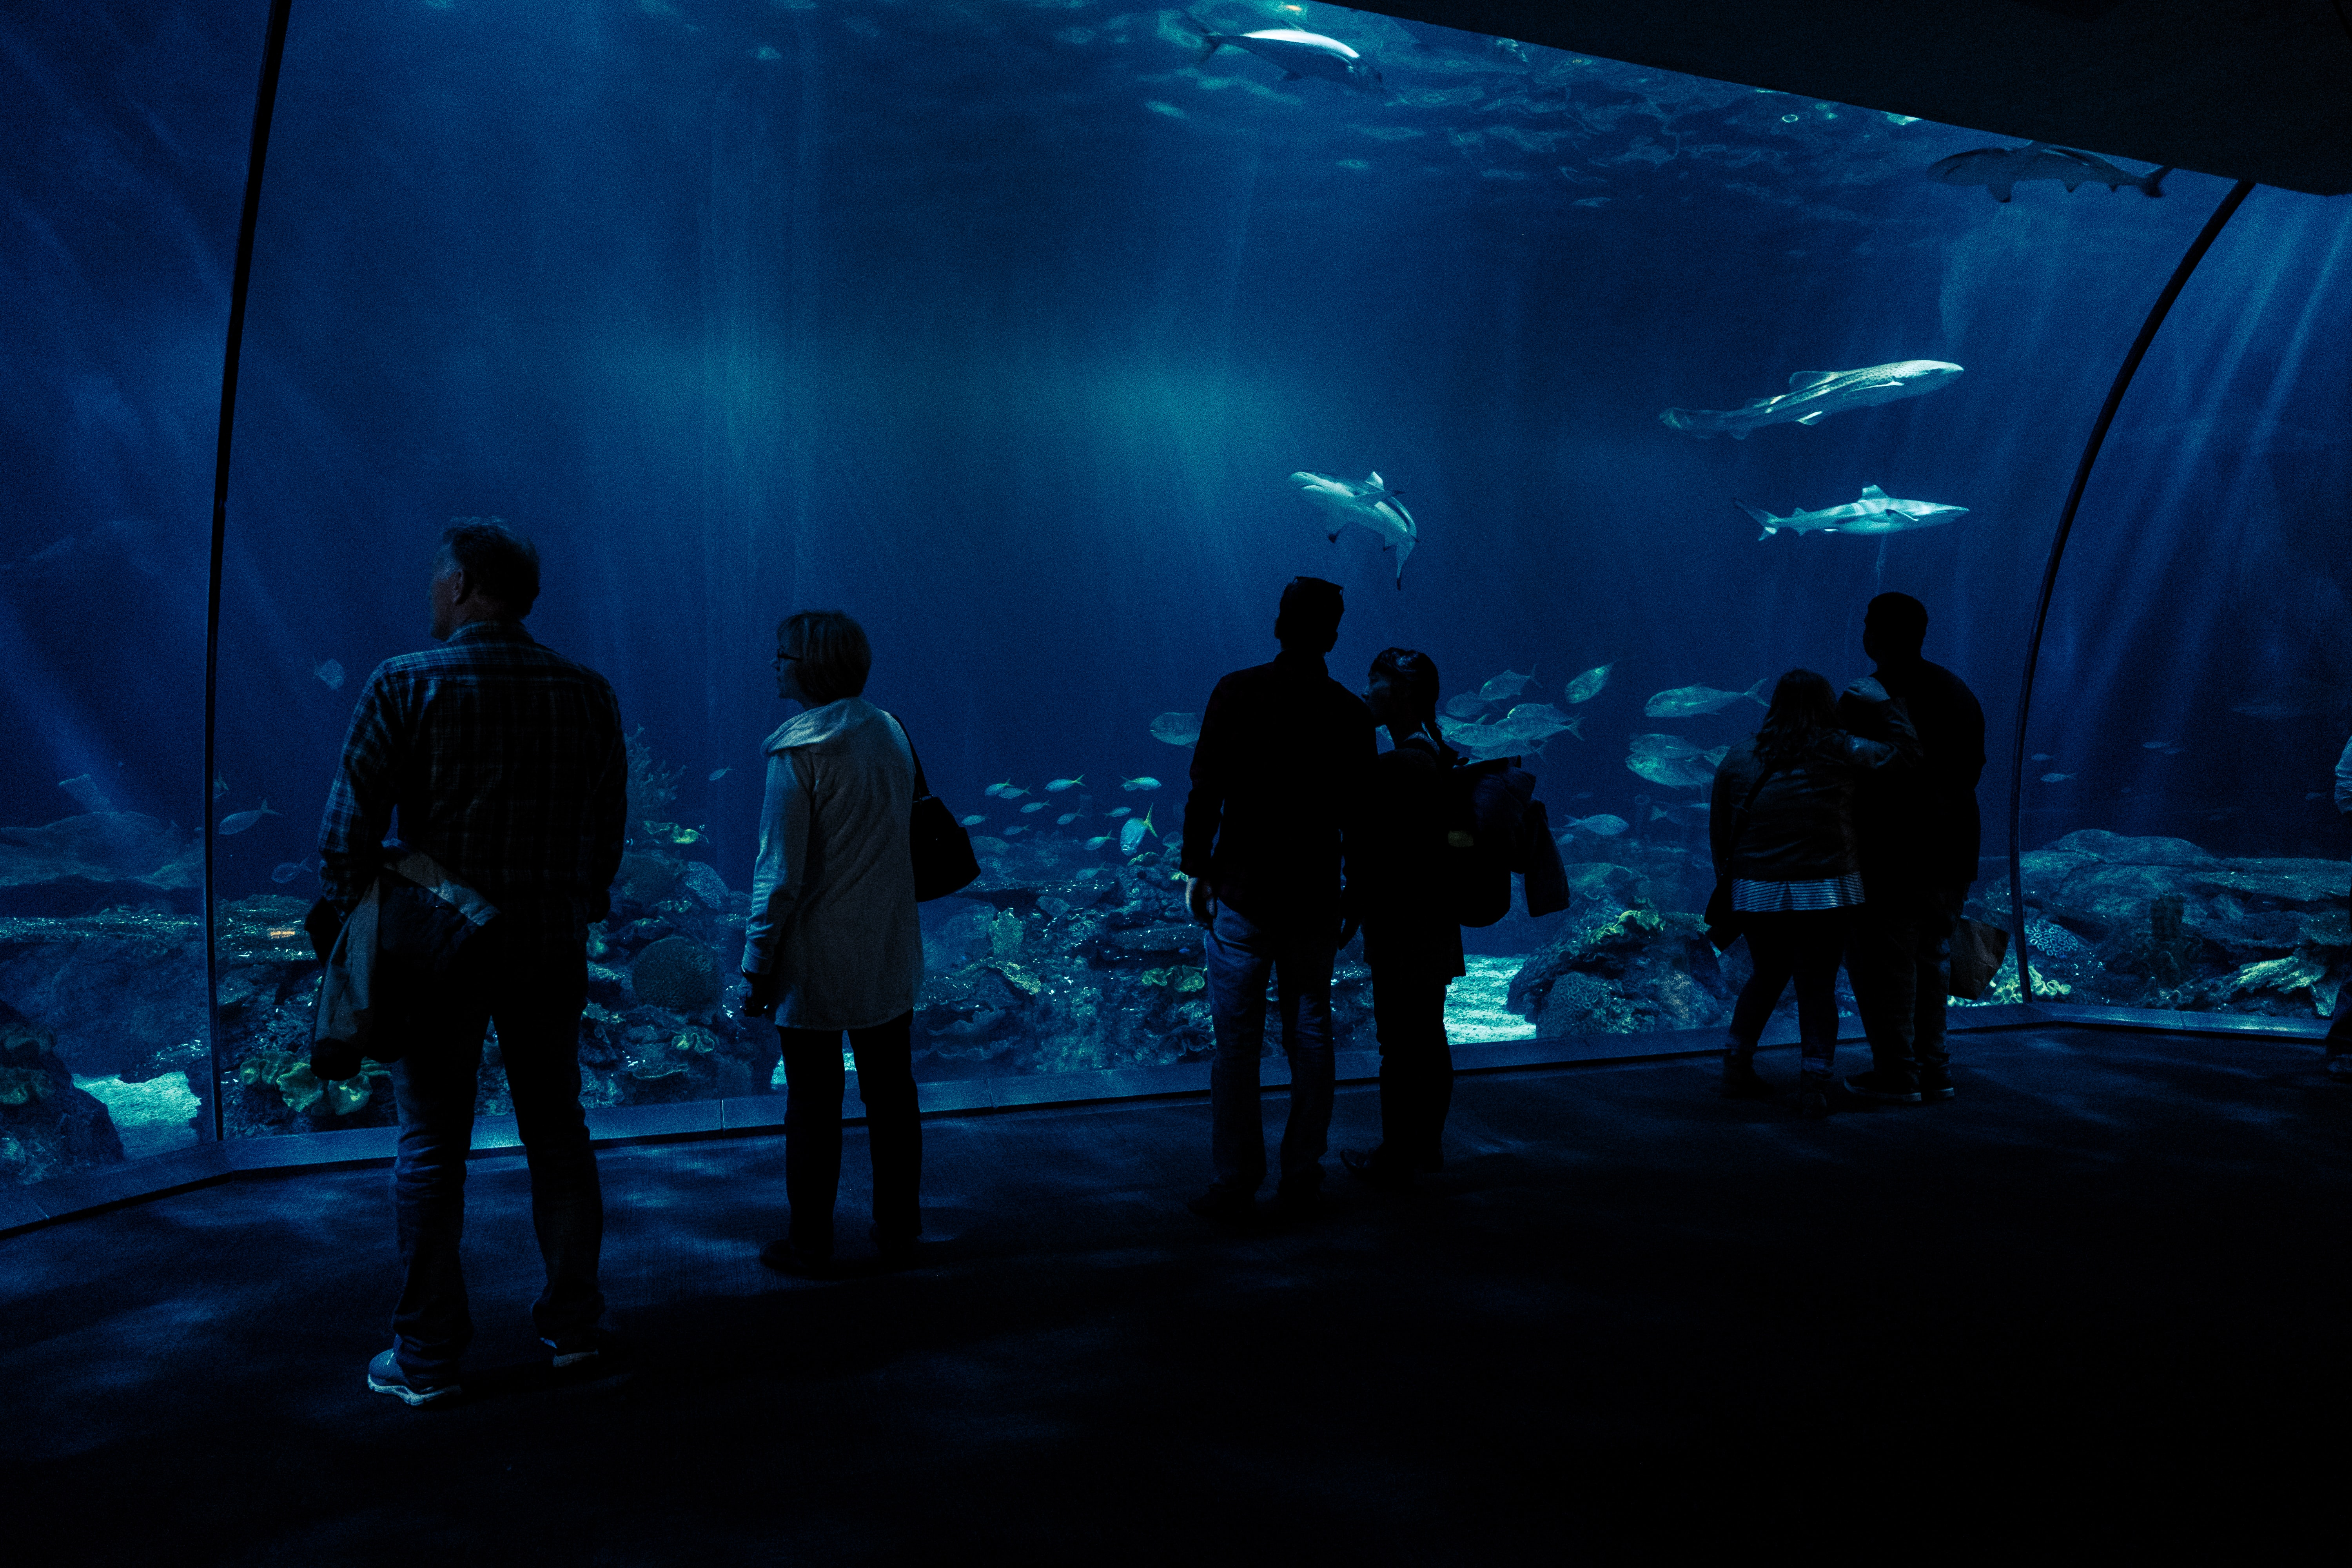 silhouette photo of group of people watching fishes on underwater aquarium